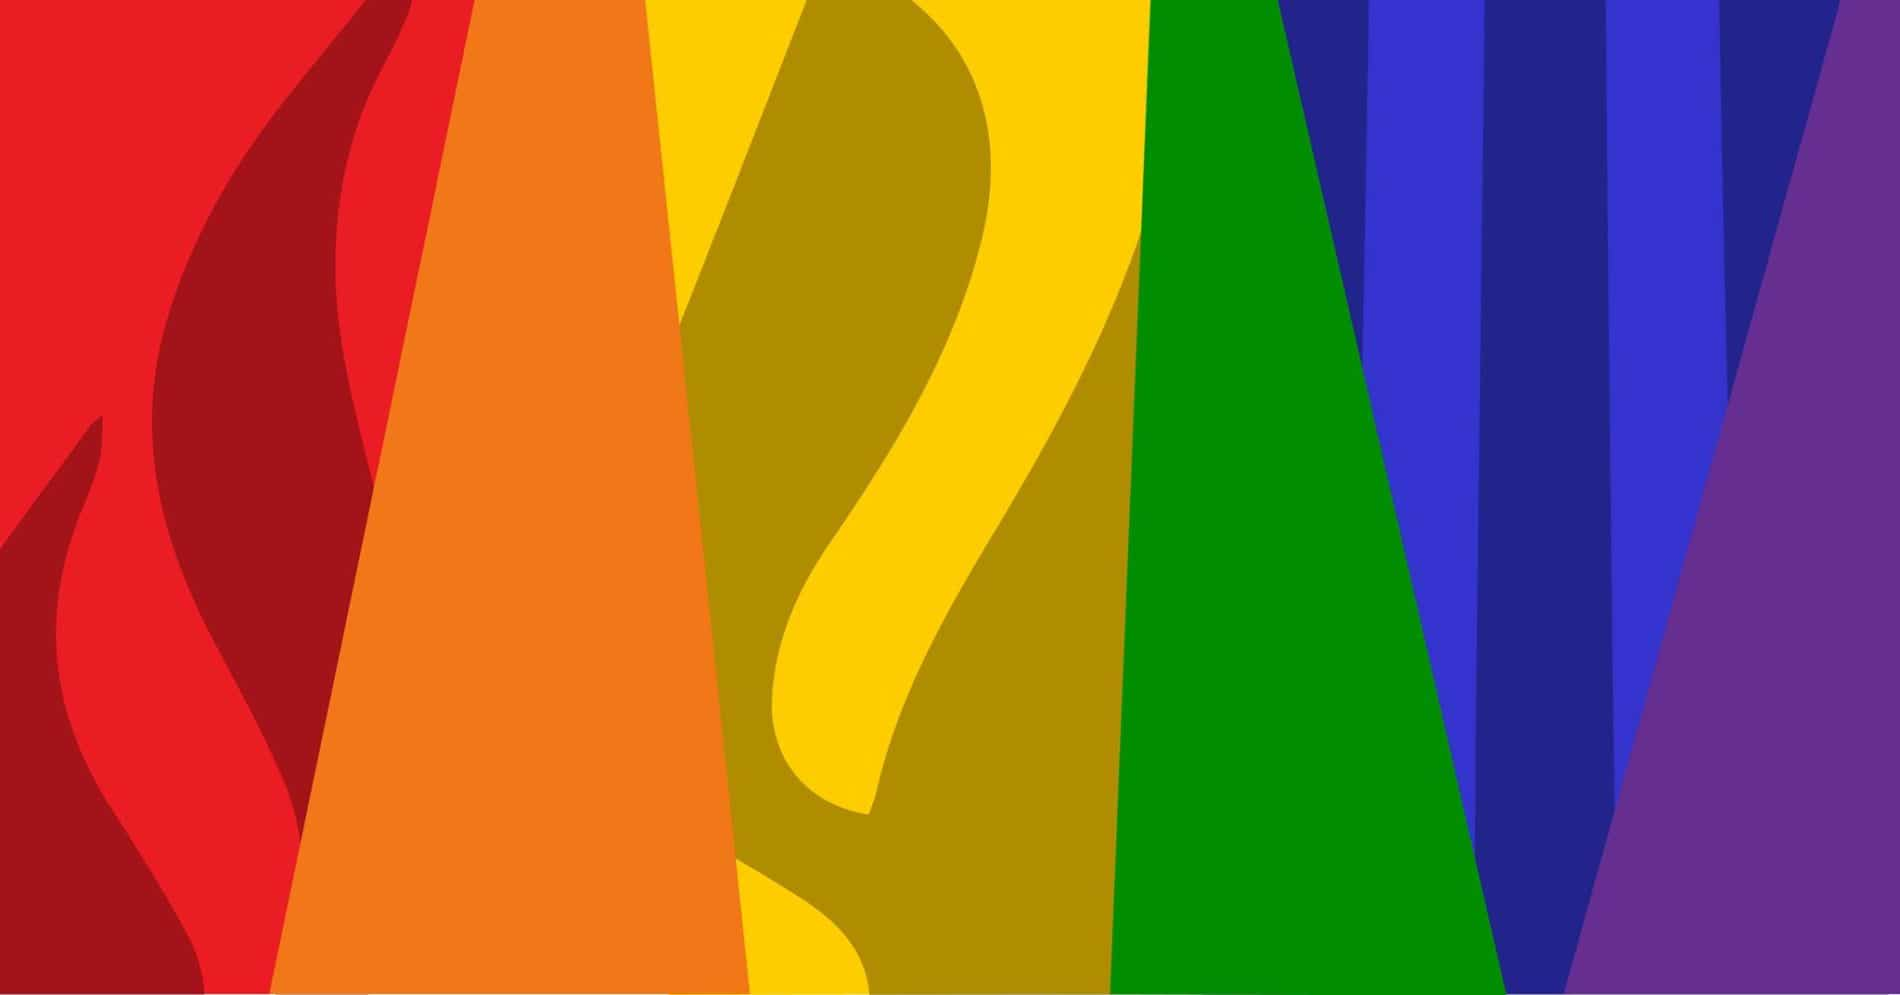 graphic blocks of colors of the rainbow